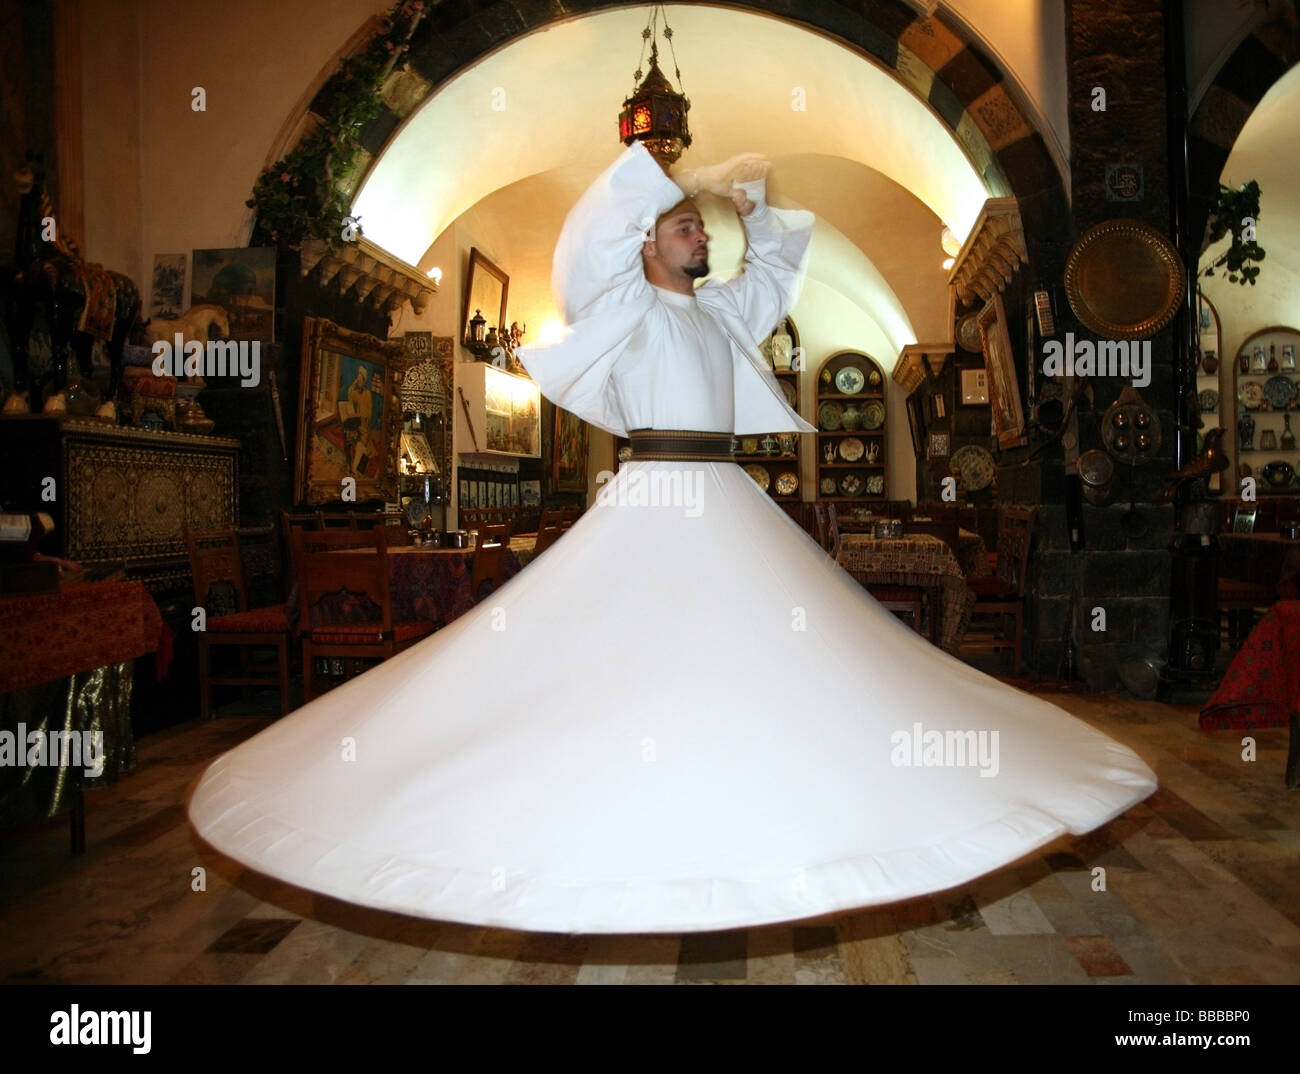 Sufi dancer or whirling dervish at a traditional restaurant Damascus Stock Photo